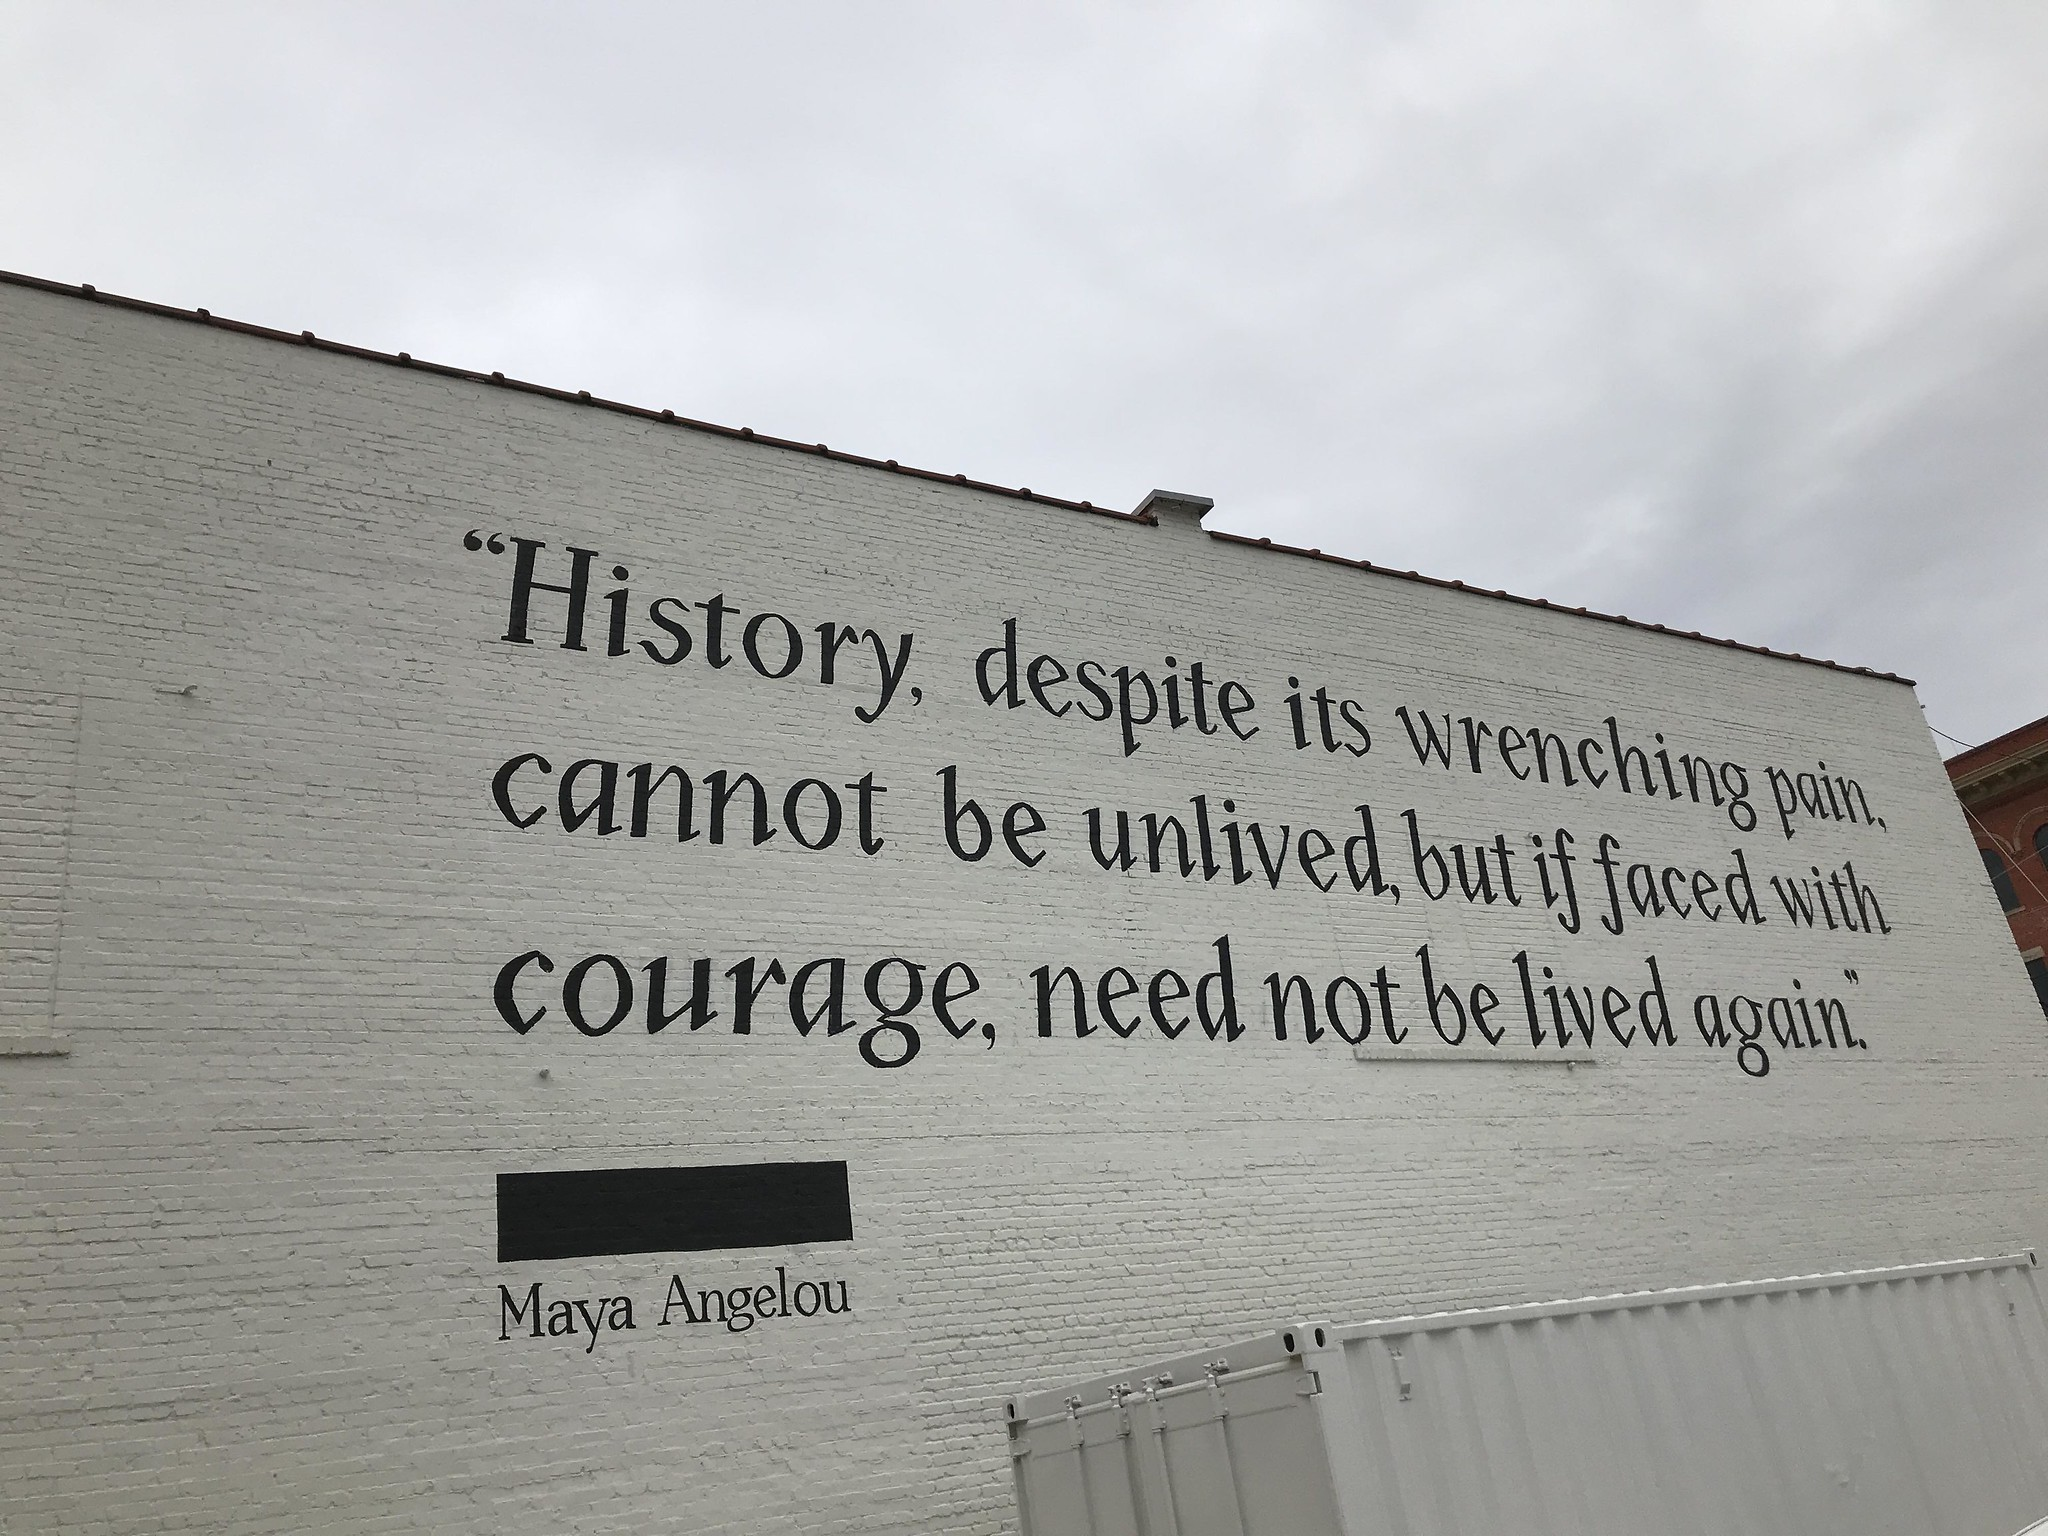 Quote by Maya Angelou printed on wall